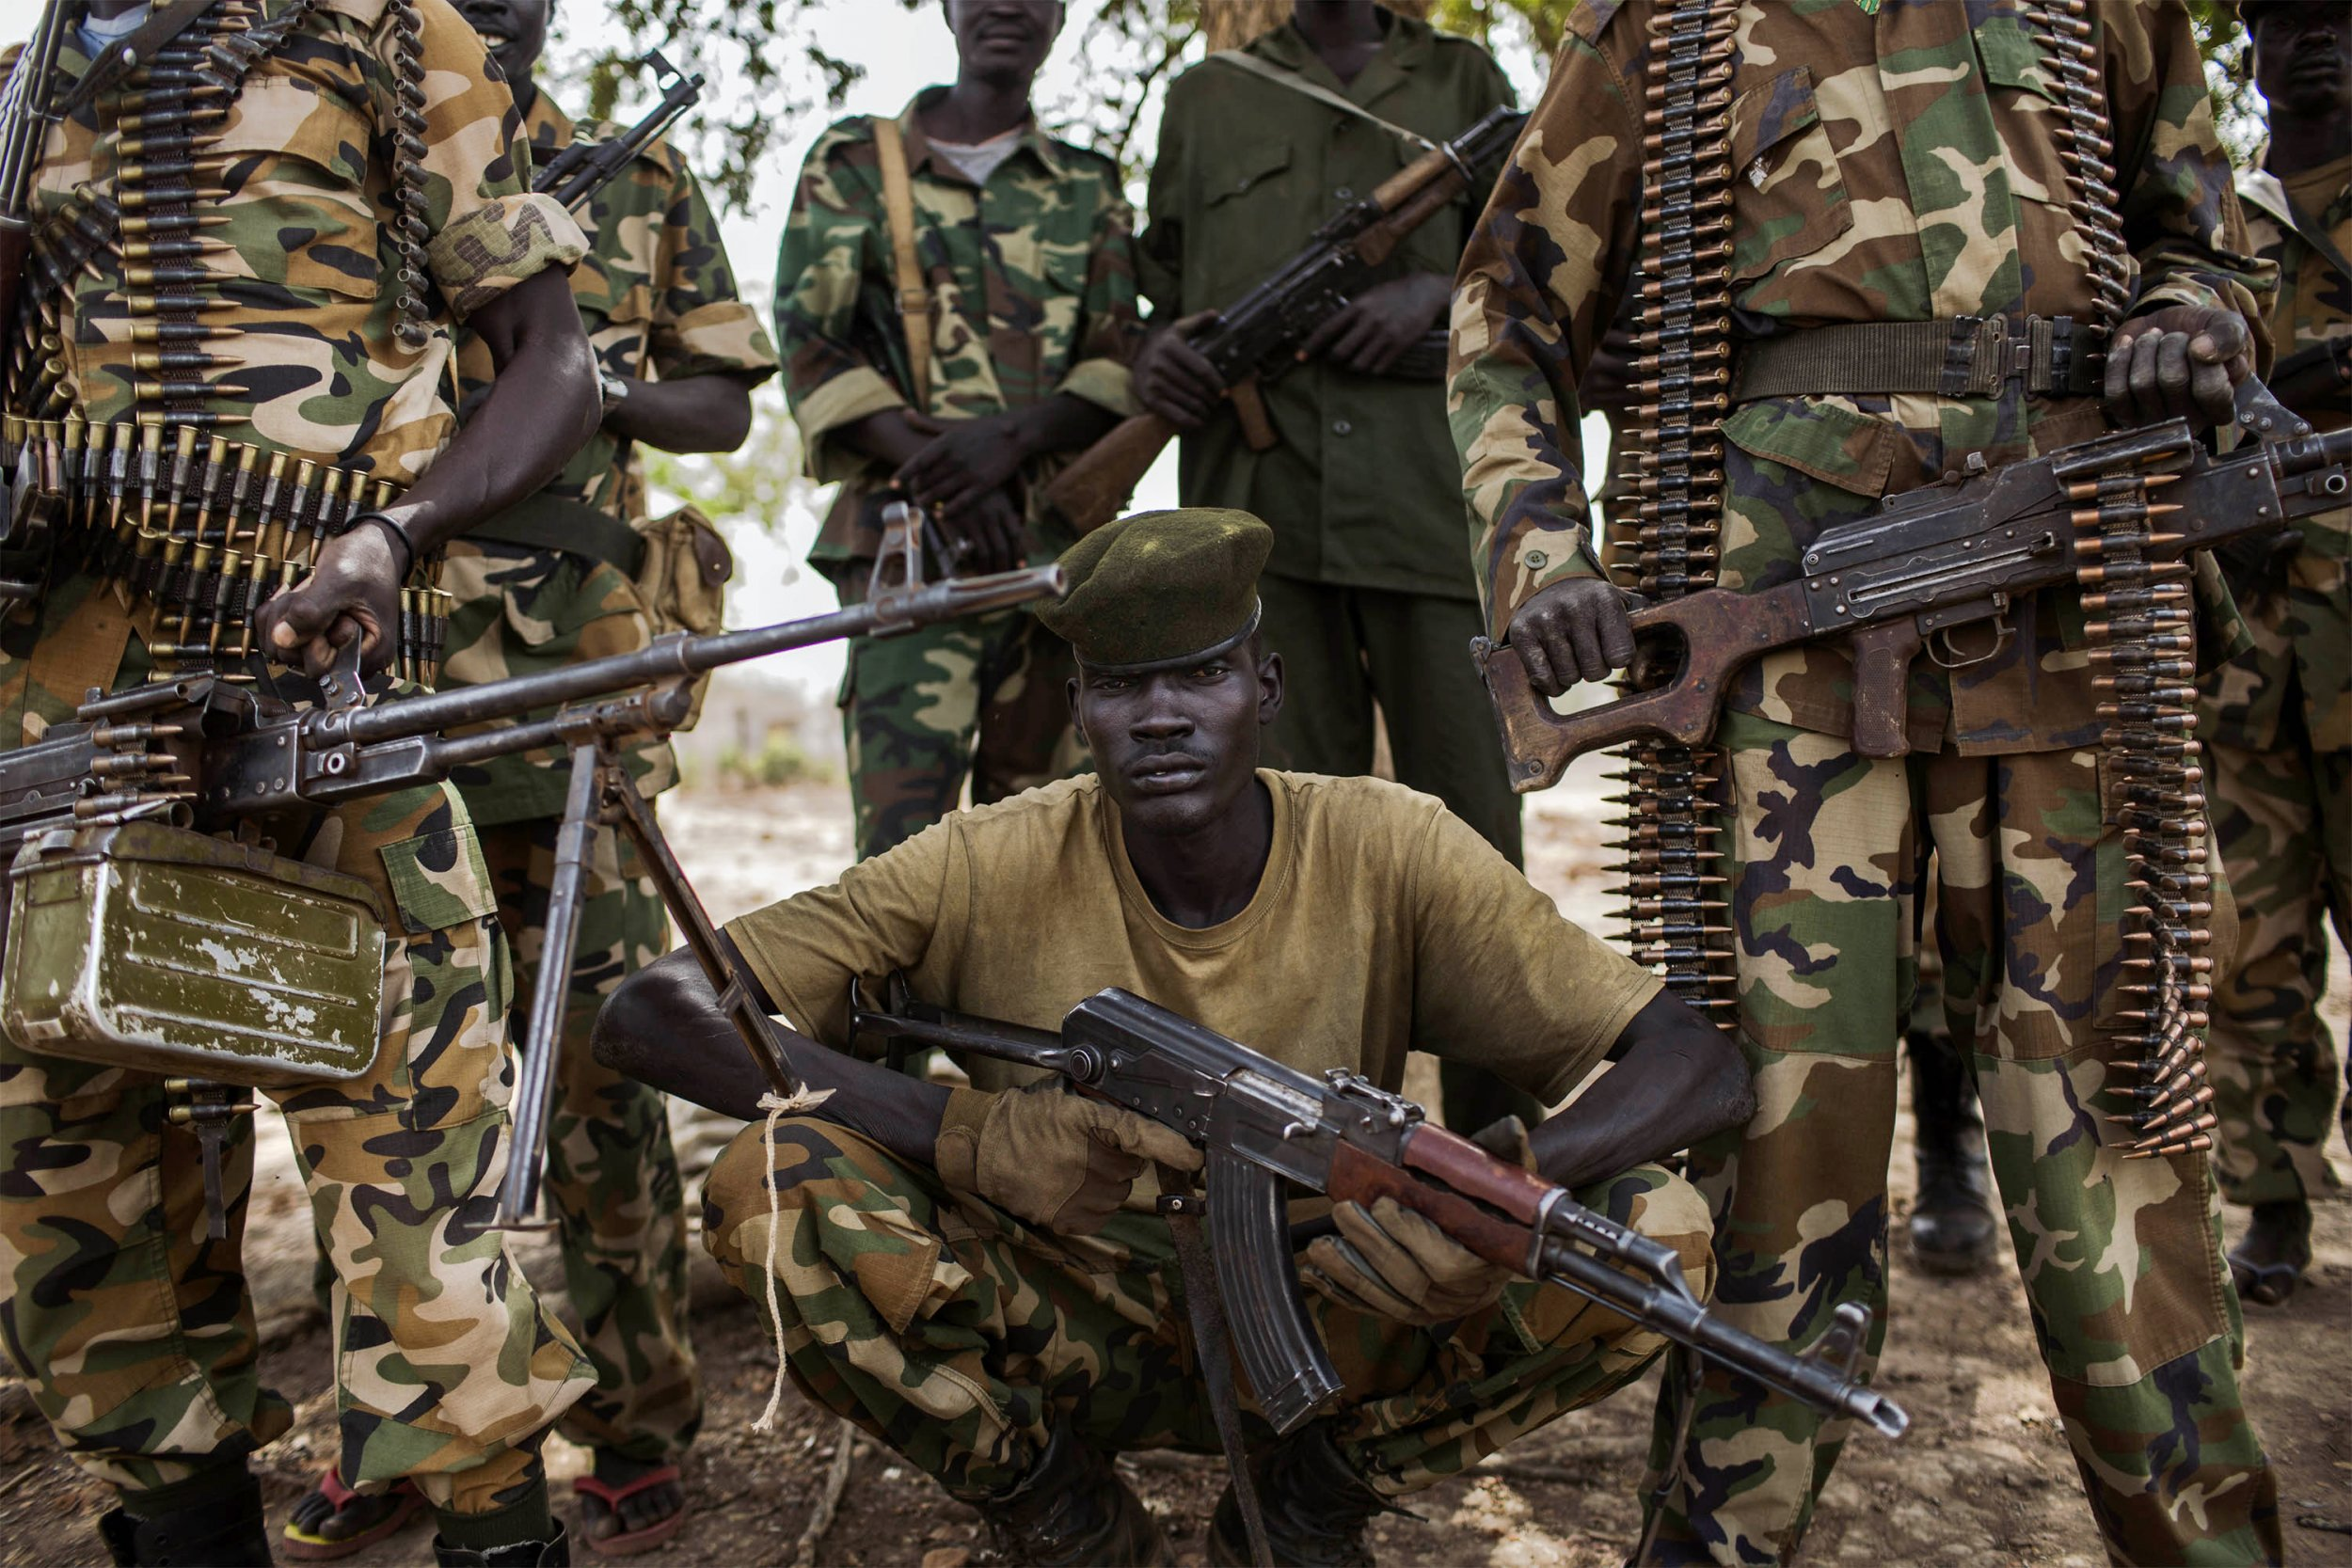 South Sudanese soldiers pose at headquarters.